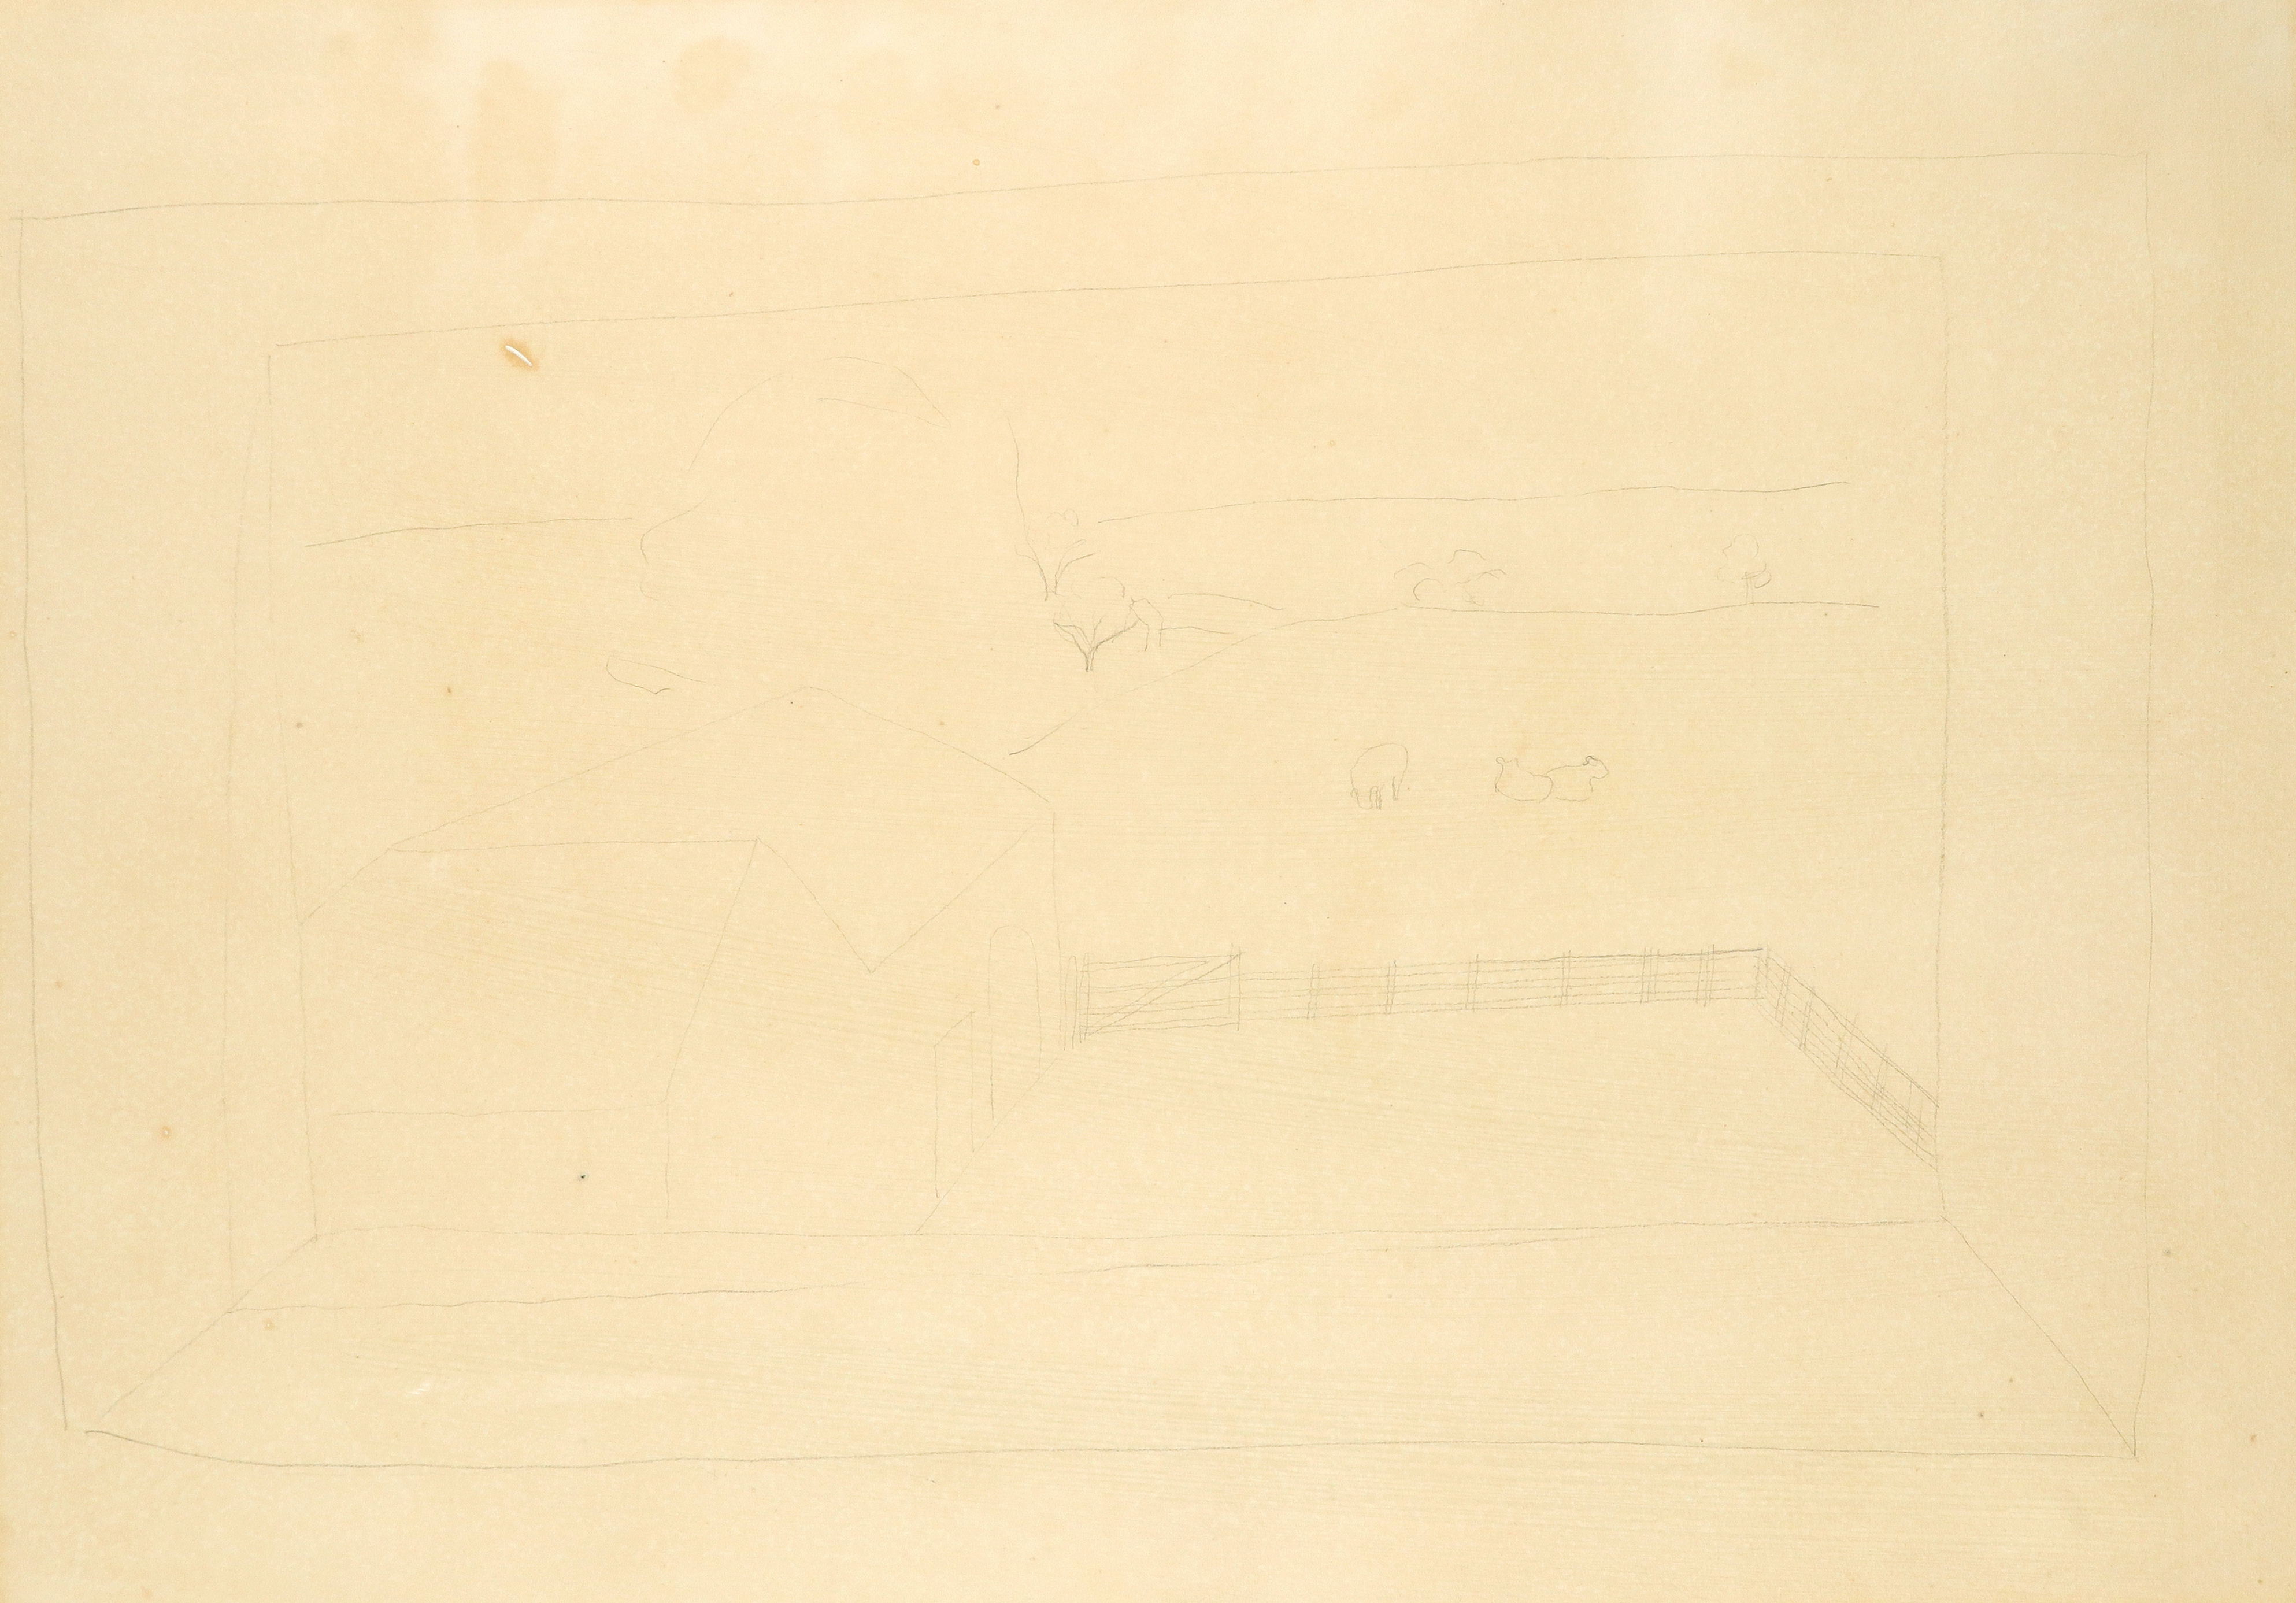 ‡Ben Nicholson OM (1894-1982) Banks Head, Cumberland Signed, dated and inscribed BANKSHEAD Ben